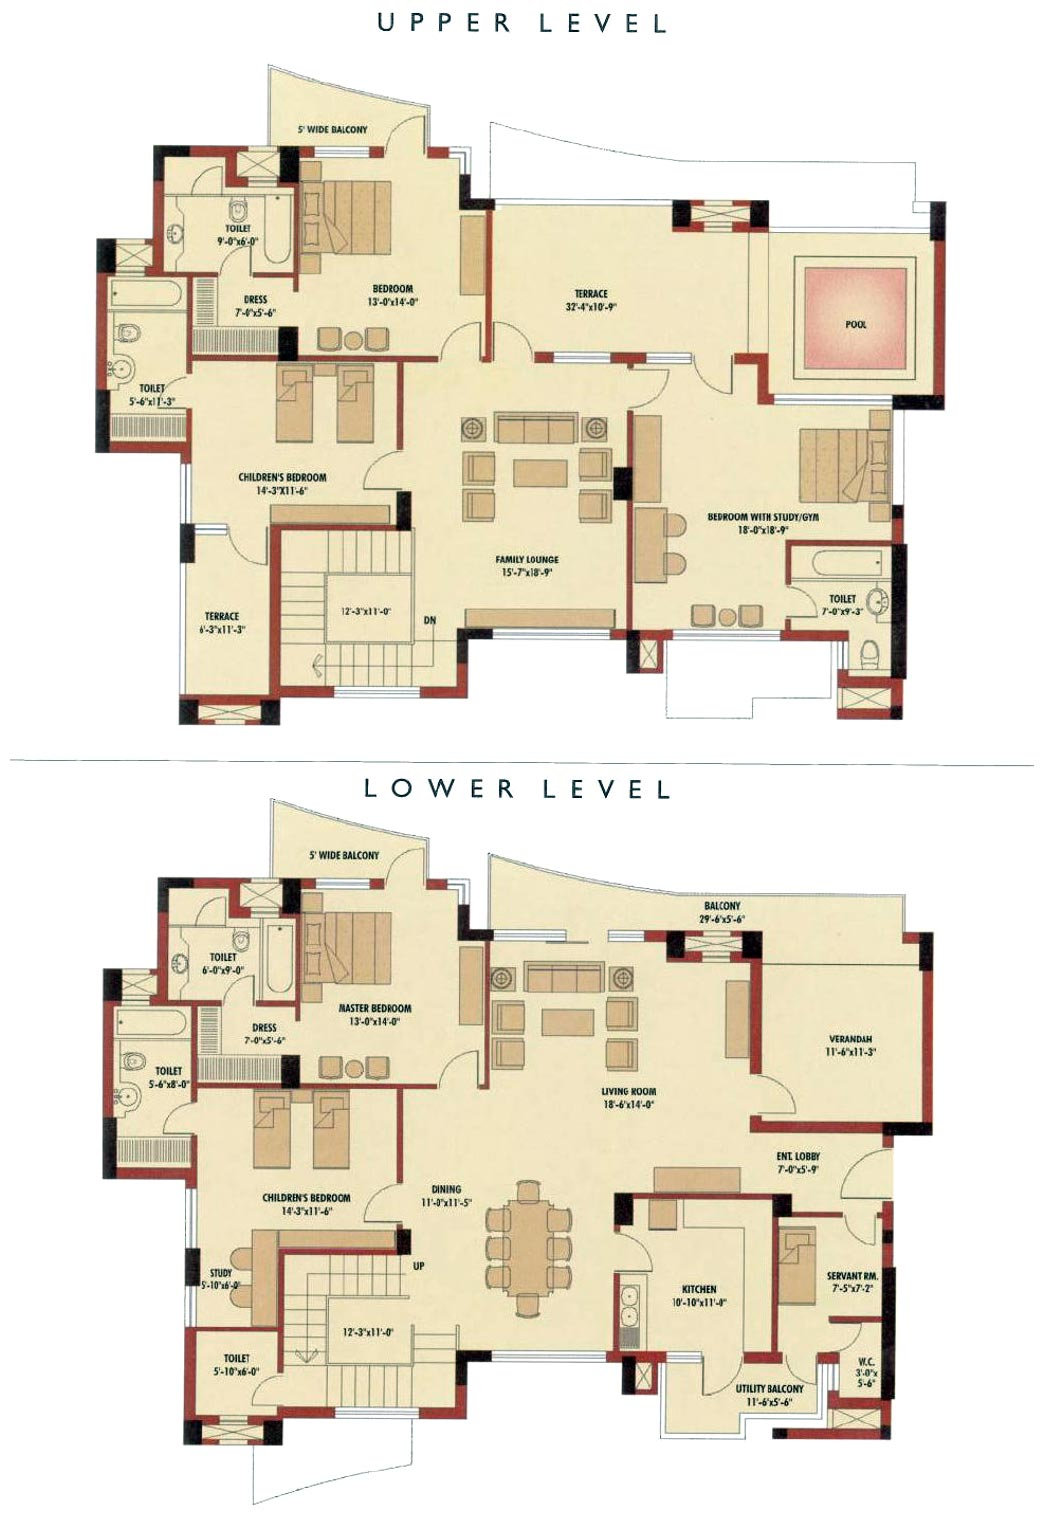 4 bedroom duplex floor garage plan floor plans for Plan for duplex house